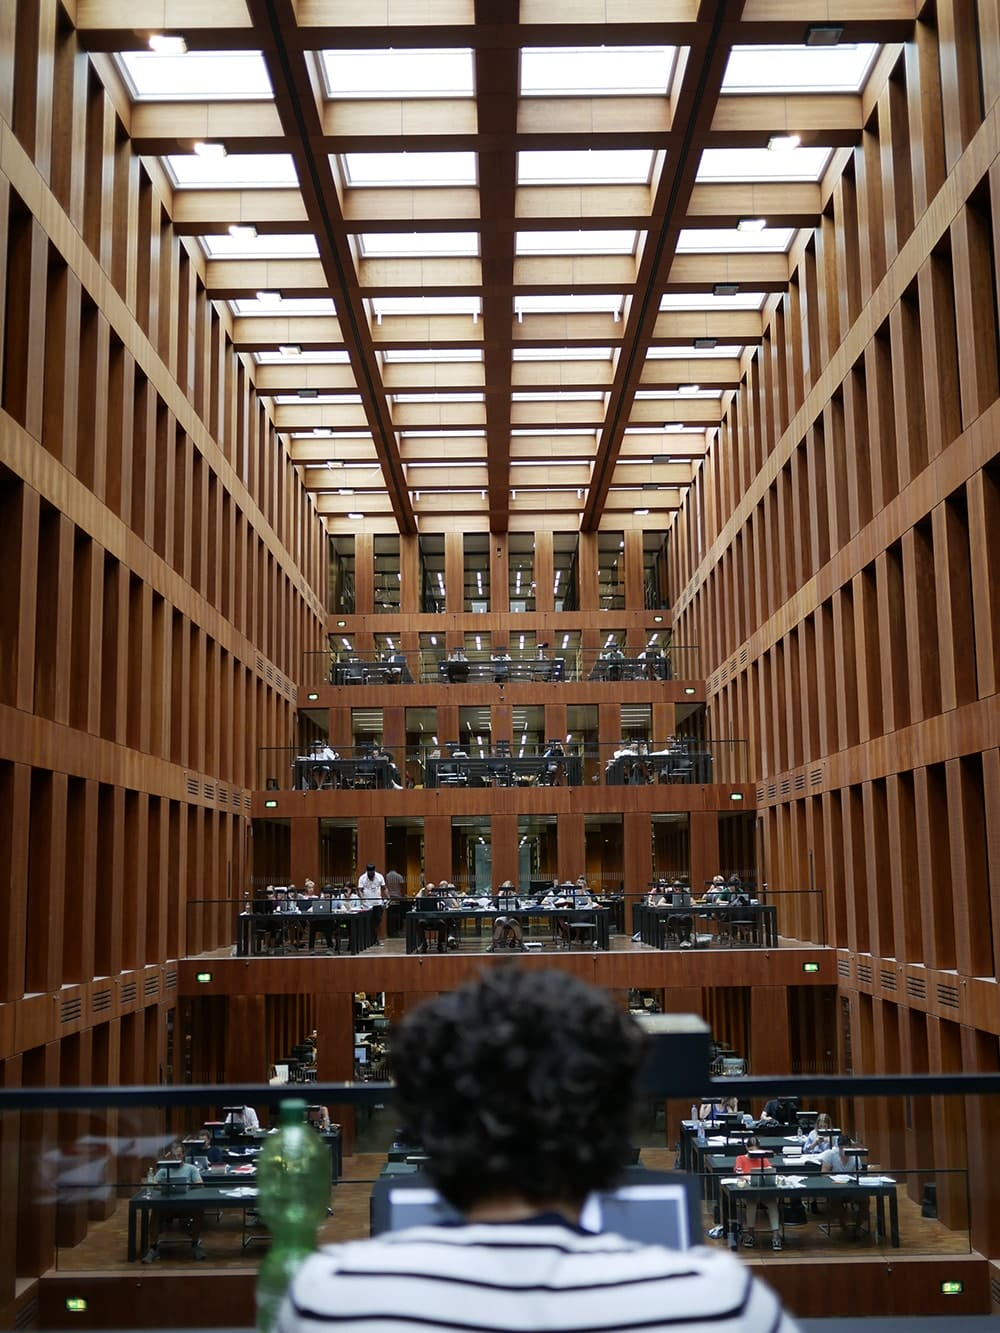 Spacious interior of a library with a reading room covered by glass roof. Berlin